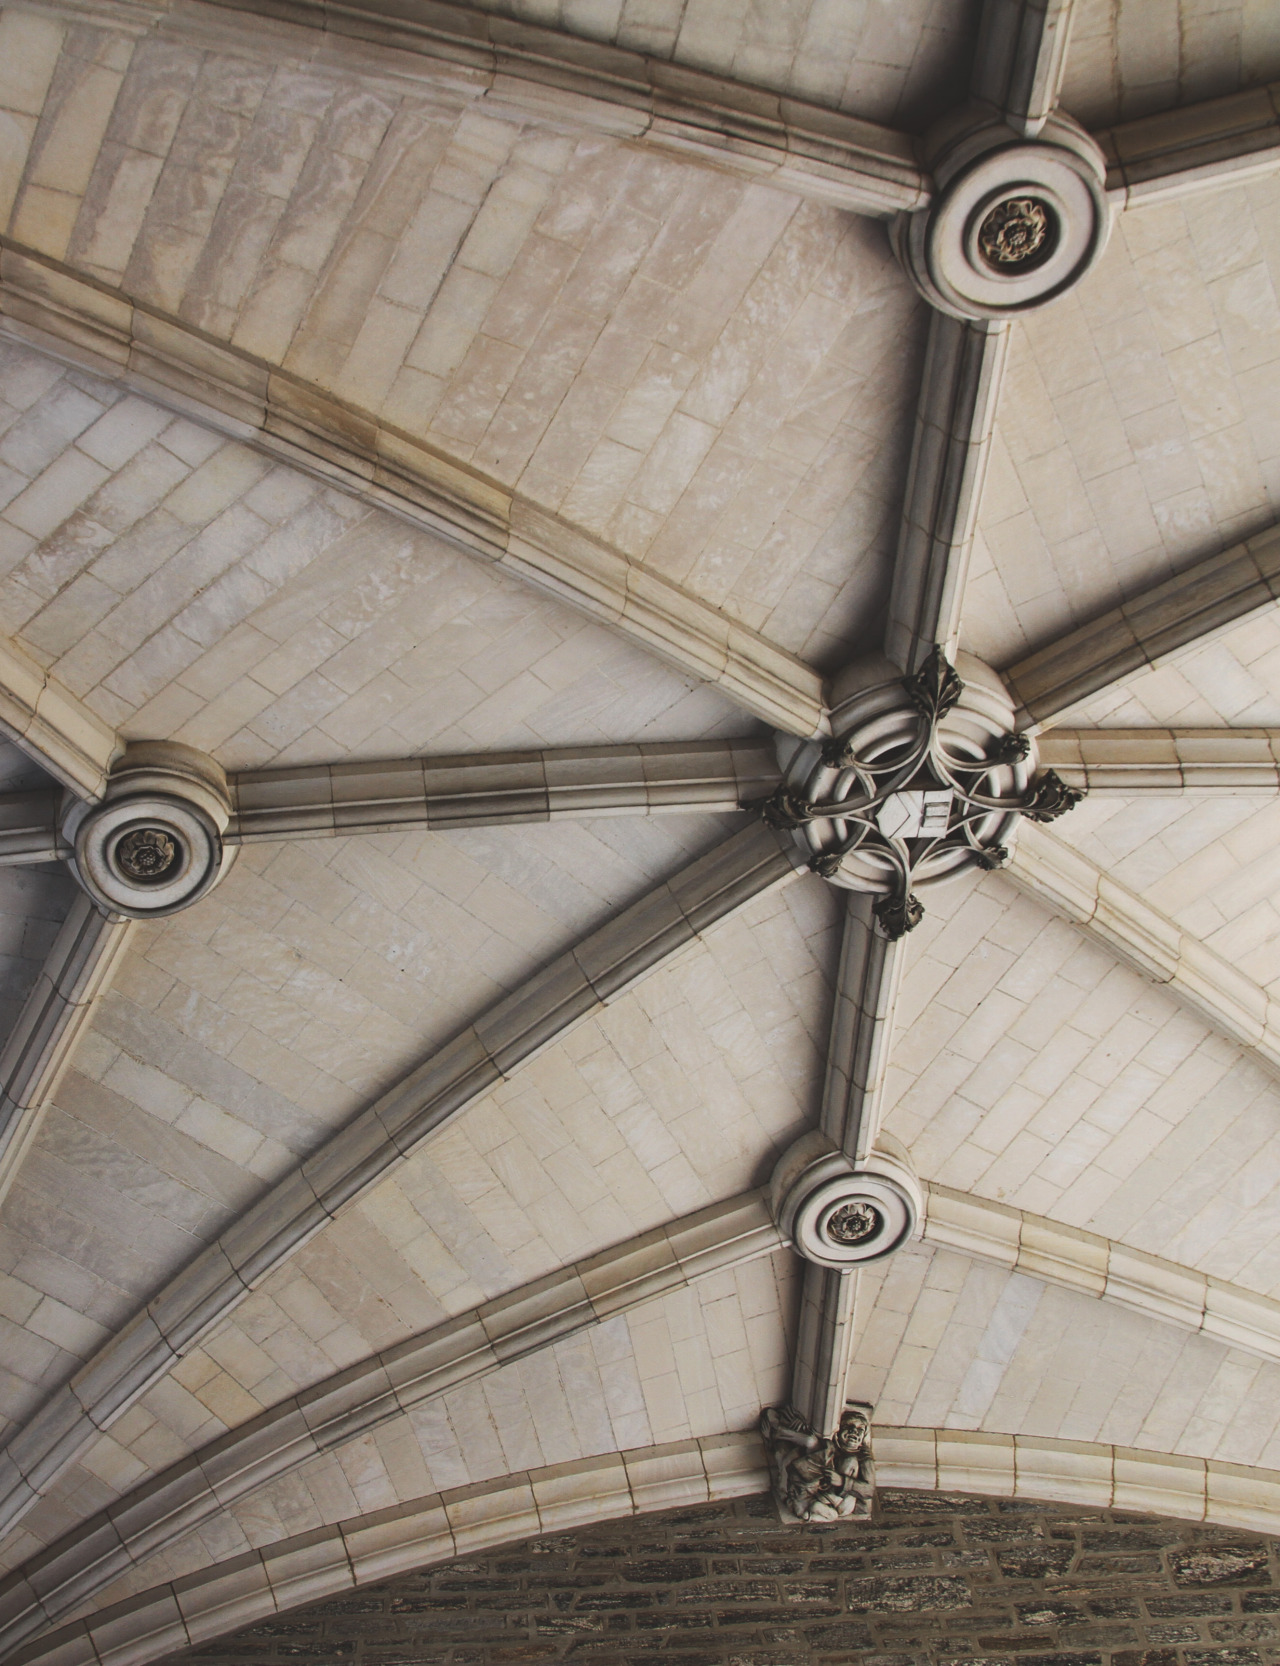 A vaulted ceiling in Yale, Connecticut, taken by me